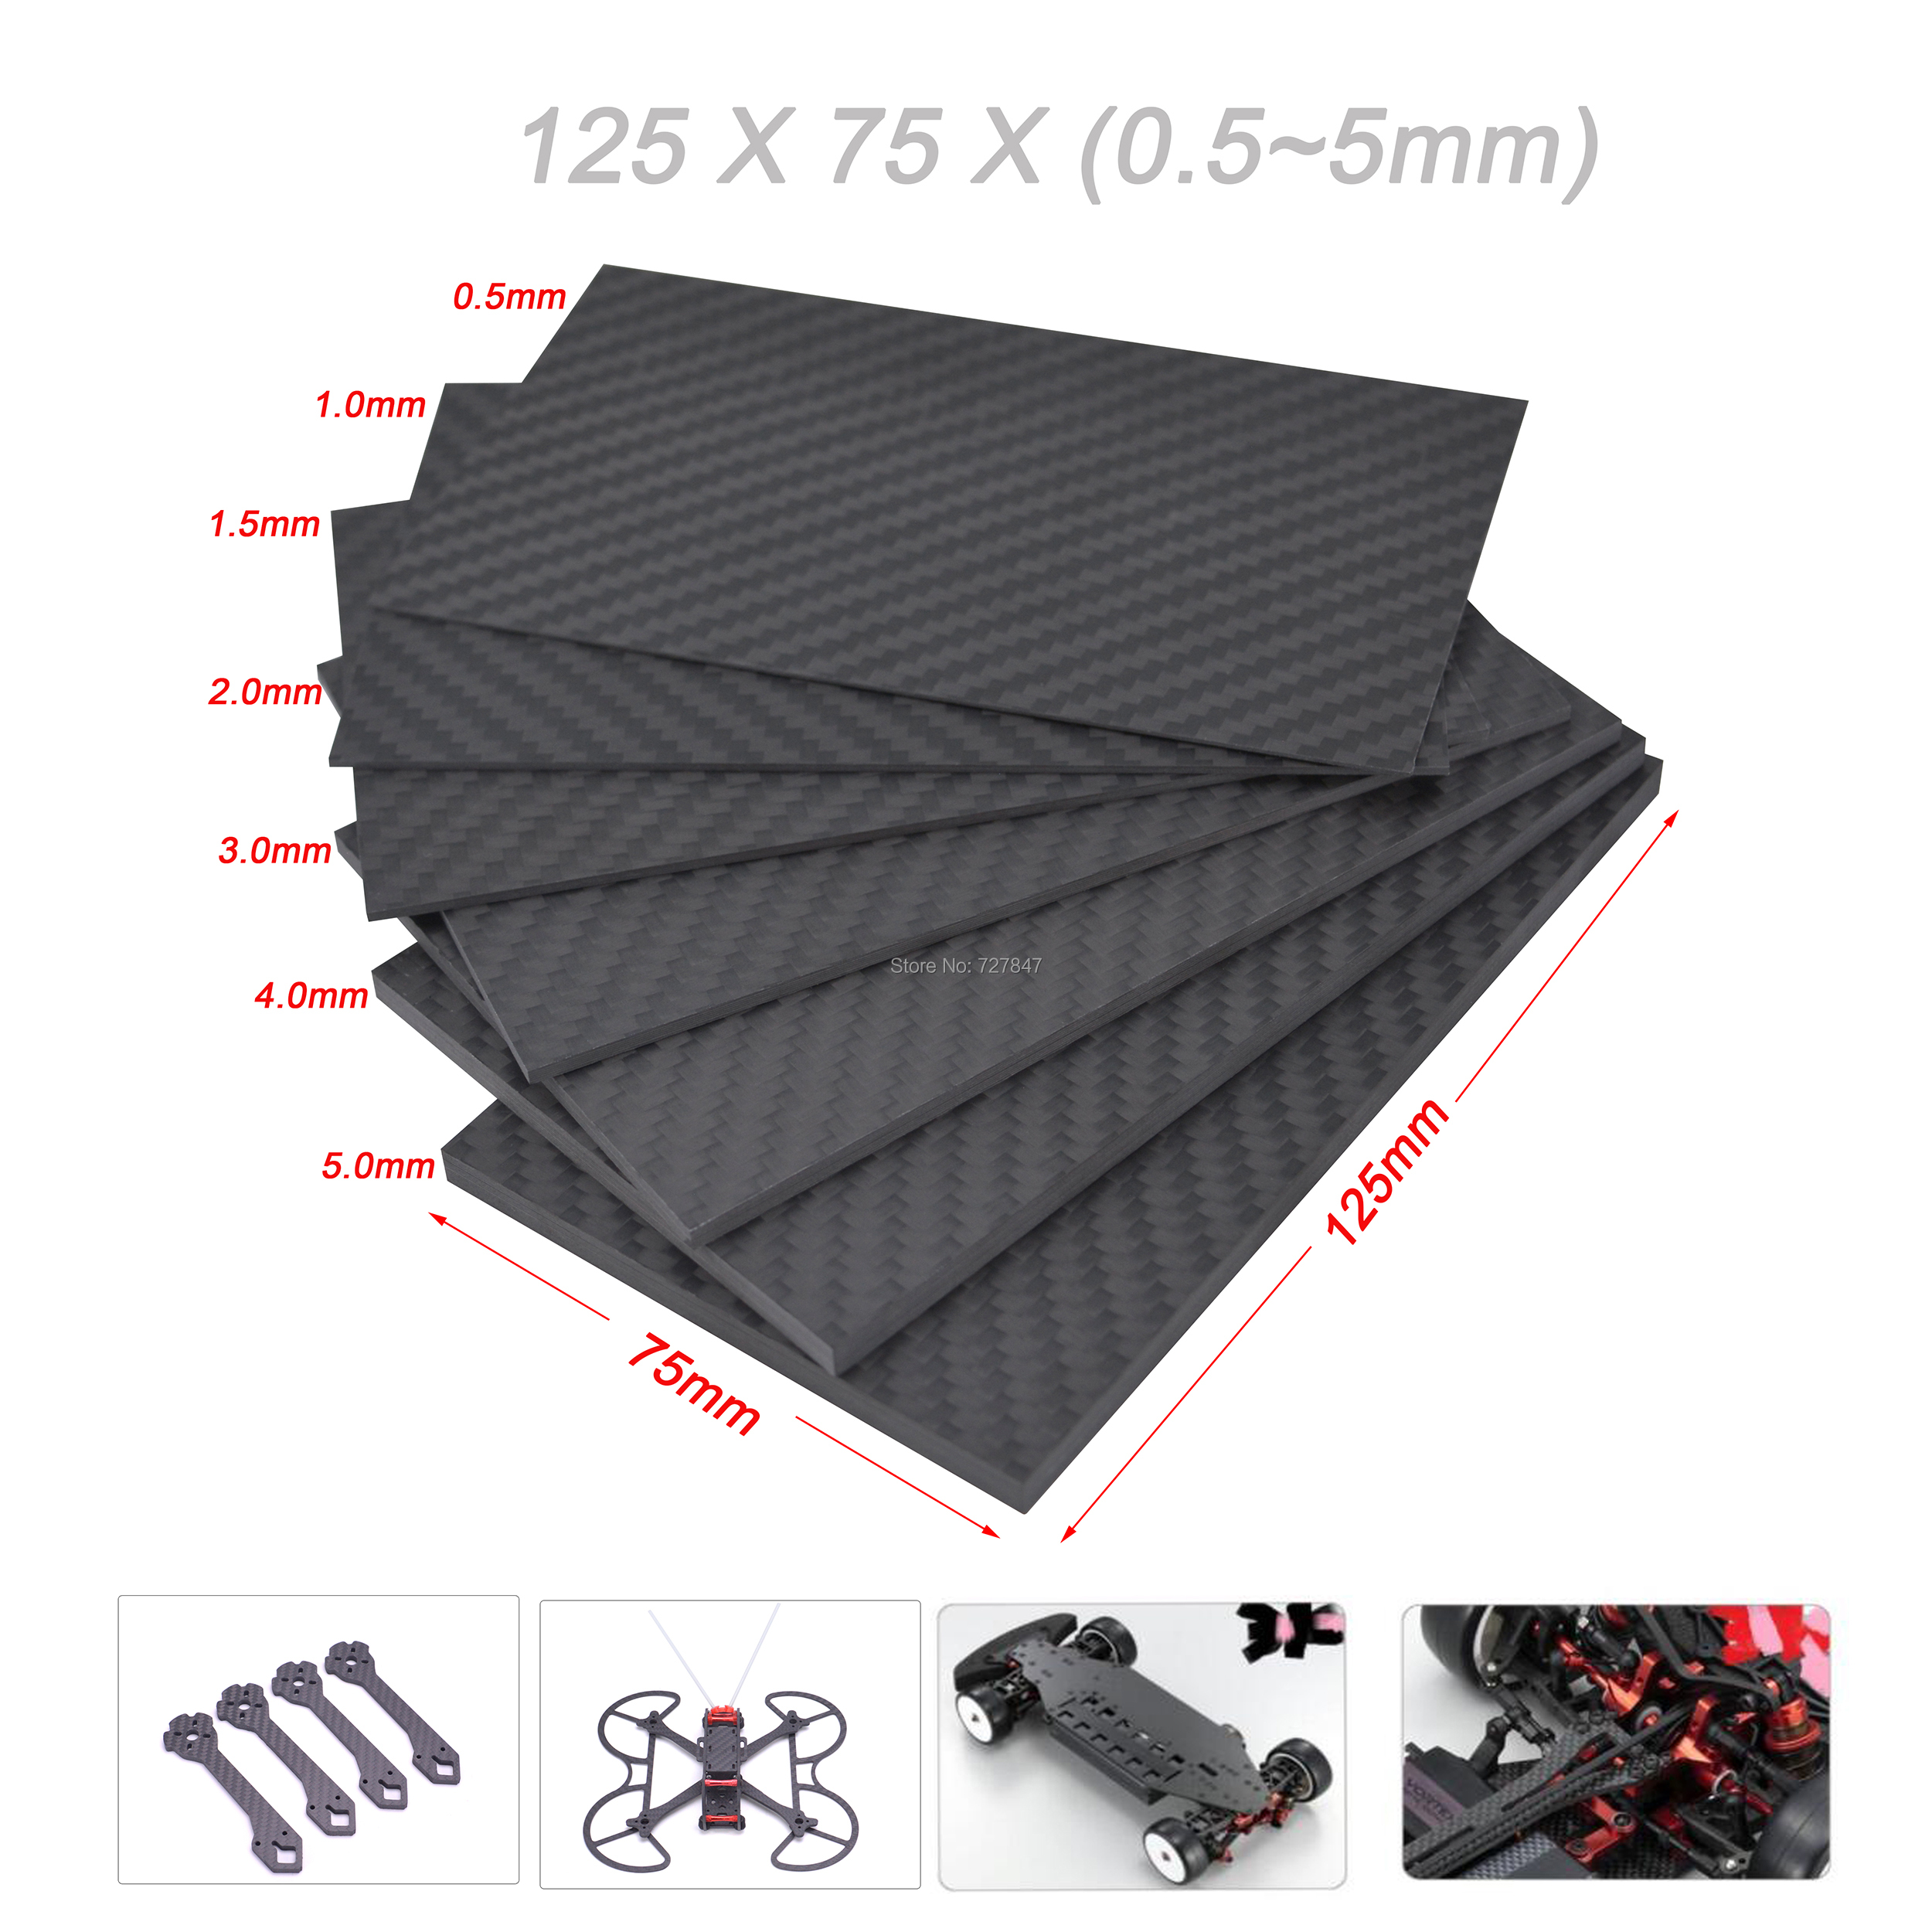 125mm X 75mm Real Carbon Fiber Plate Panel Sheets 0.5mm 1mm 1.5mm 2mm 3mm 4mm 5mm Thickness Composite Hardness Material